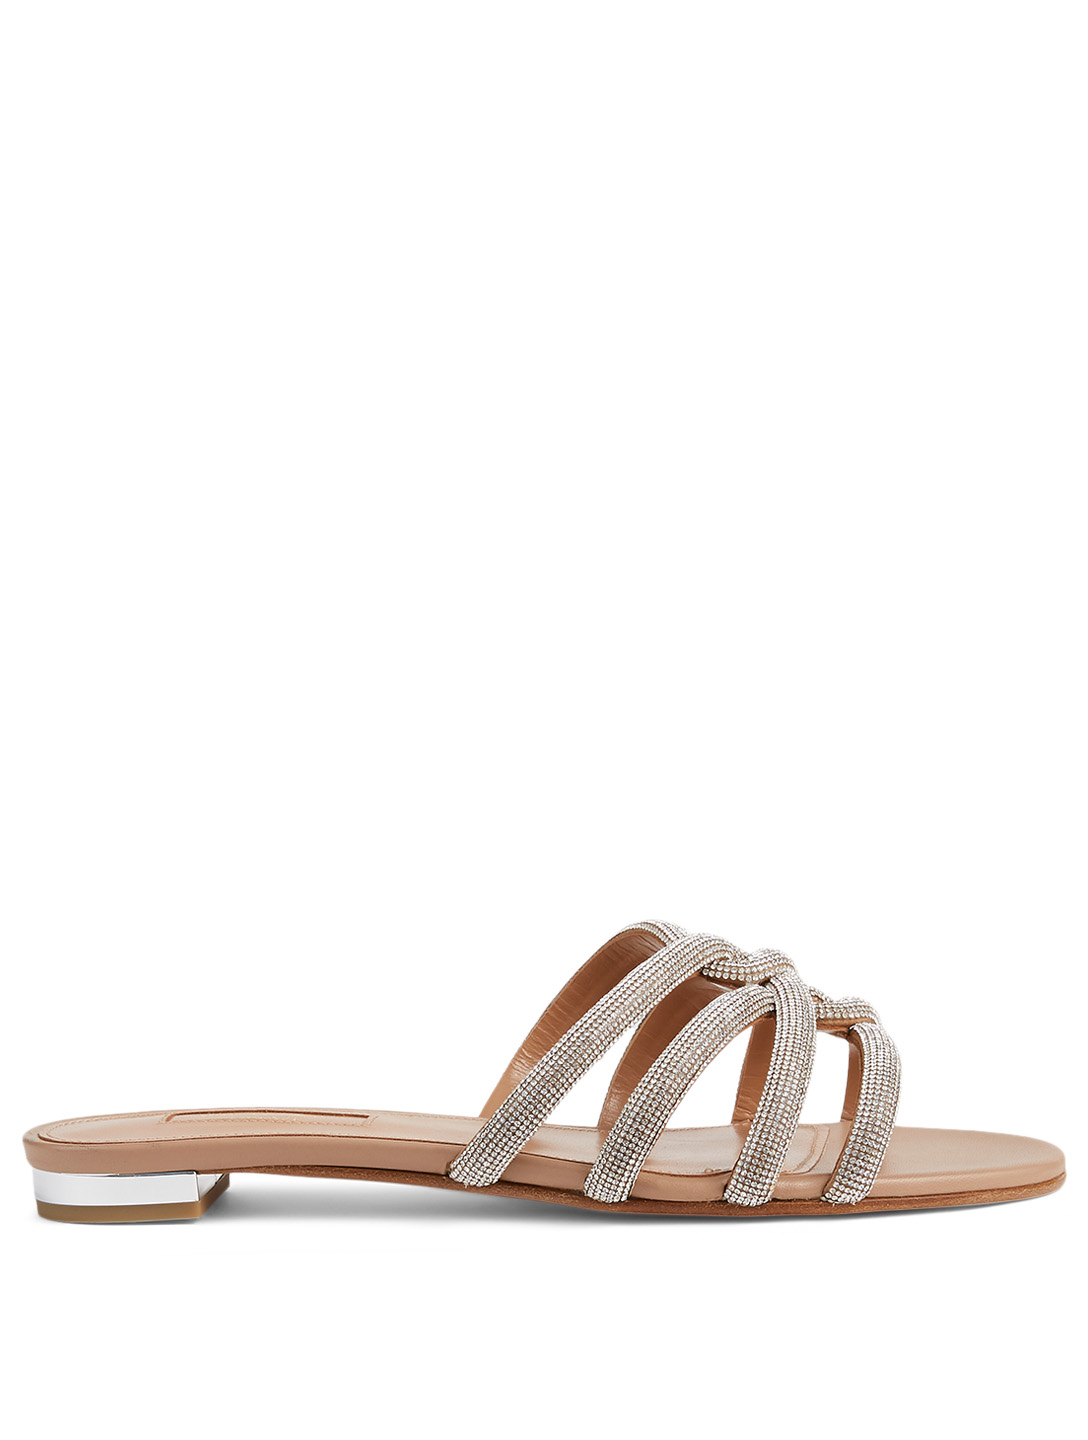 AQUAZZURA Moodust Crystal Leather Slide Sandals Women's Beige